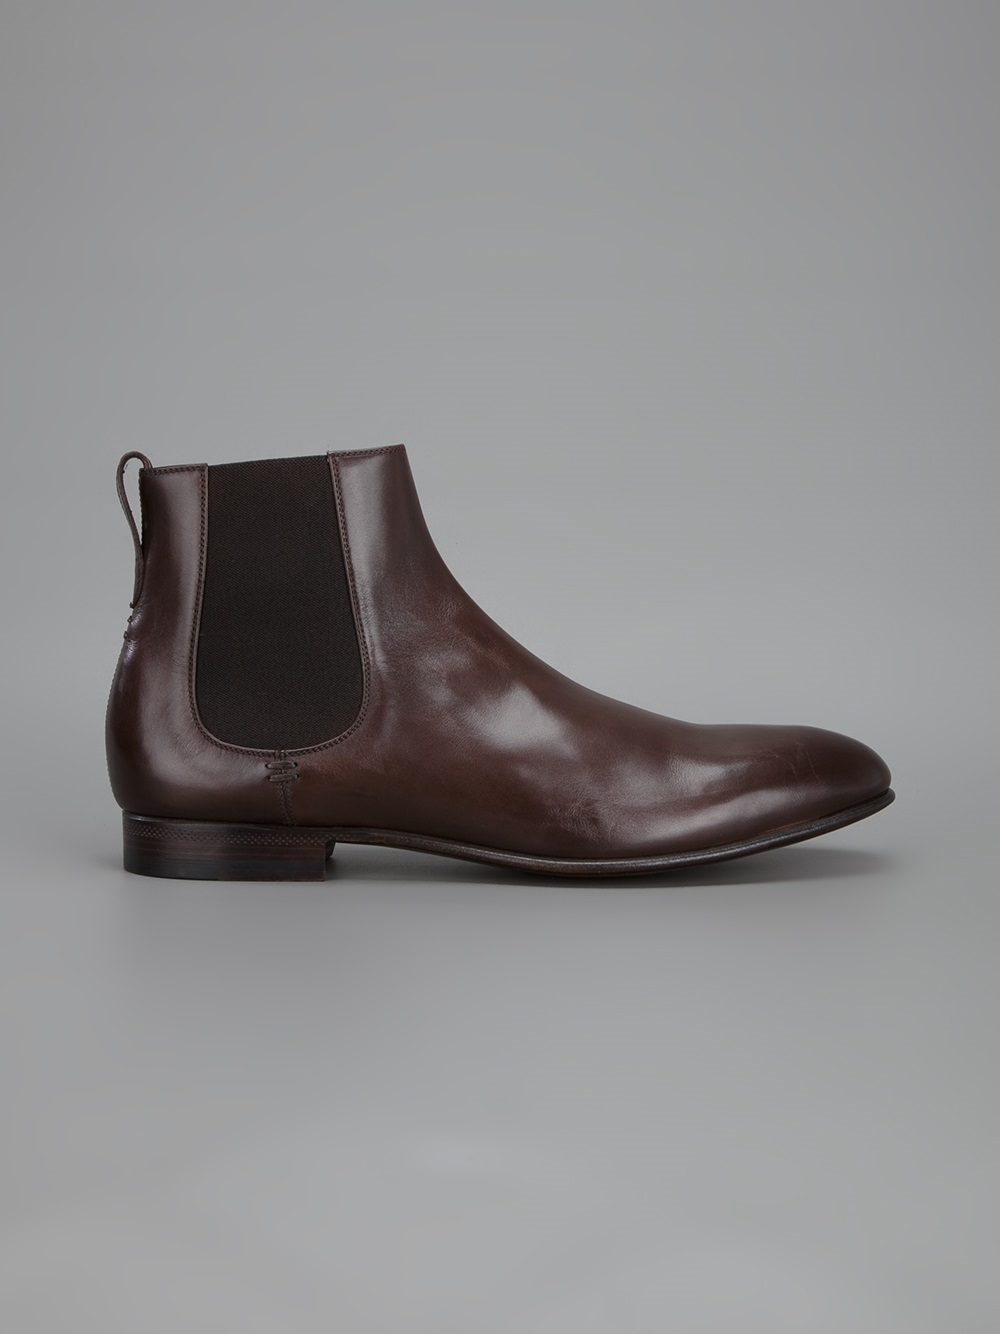 Sergio Rossi Ankle Boot In Brown For Men Lyst